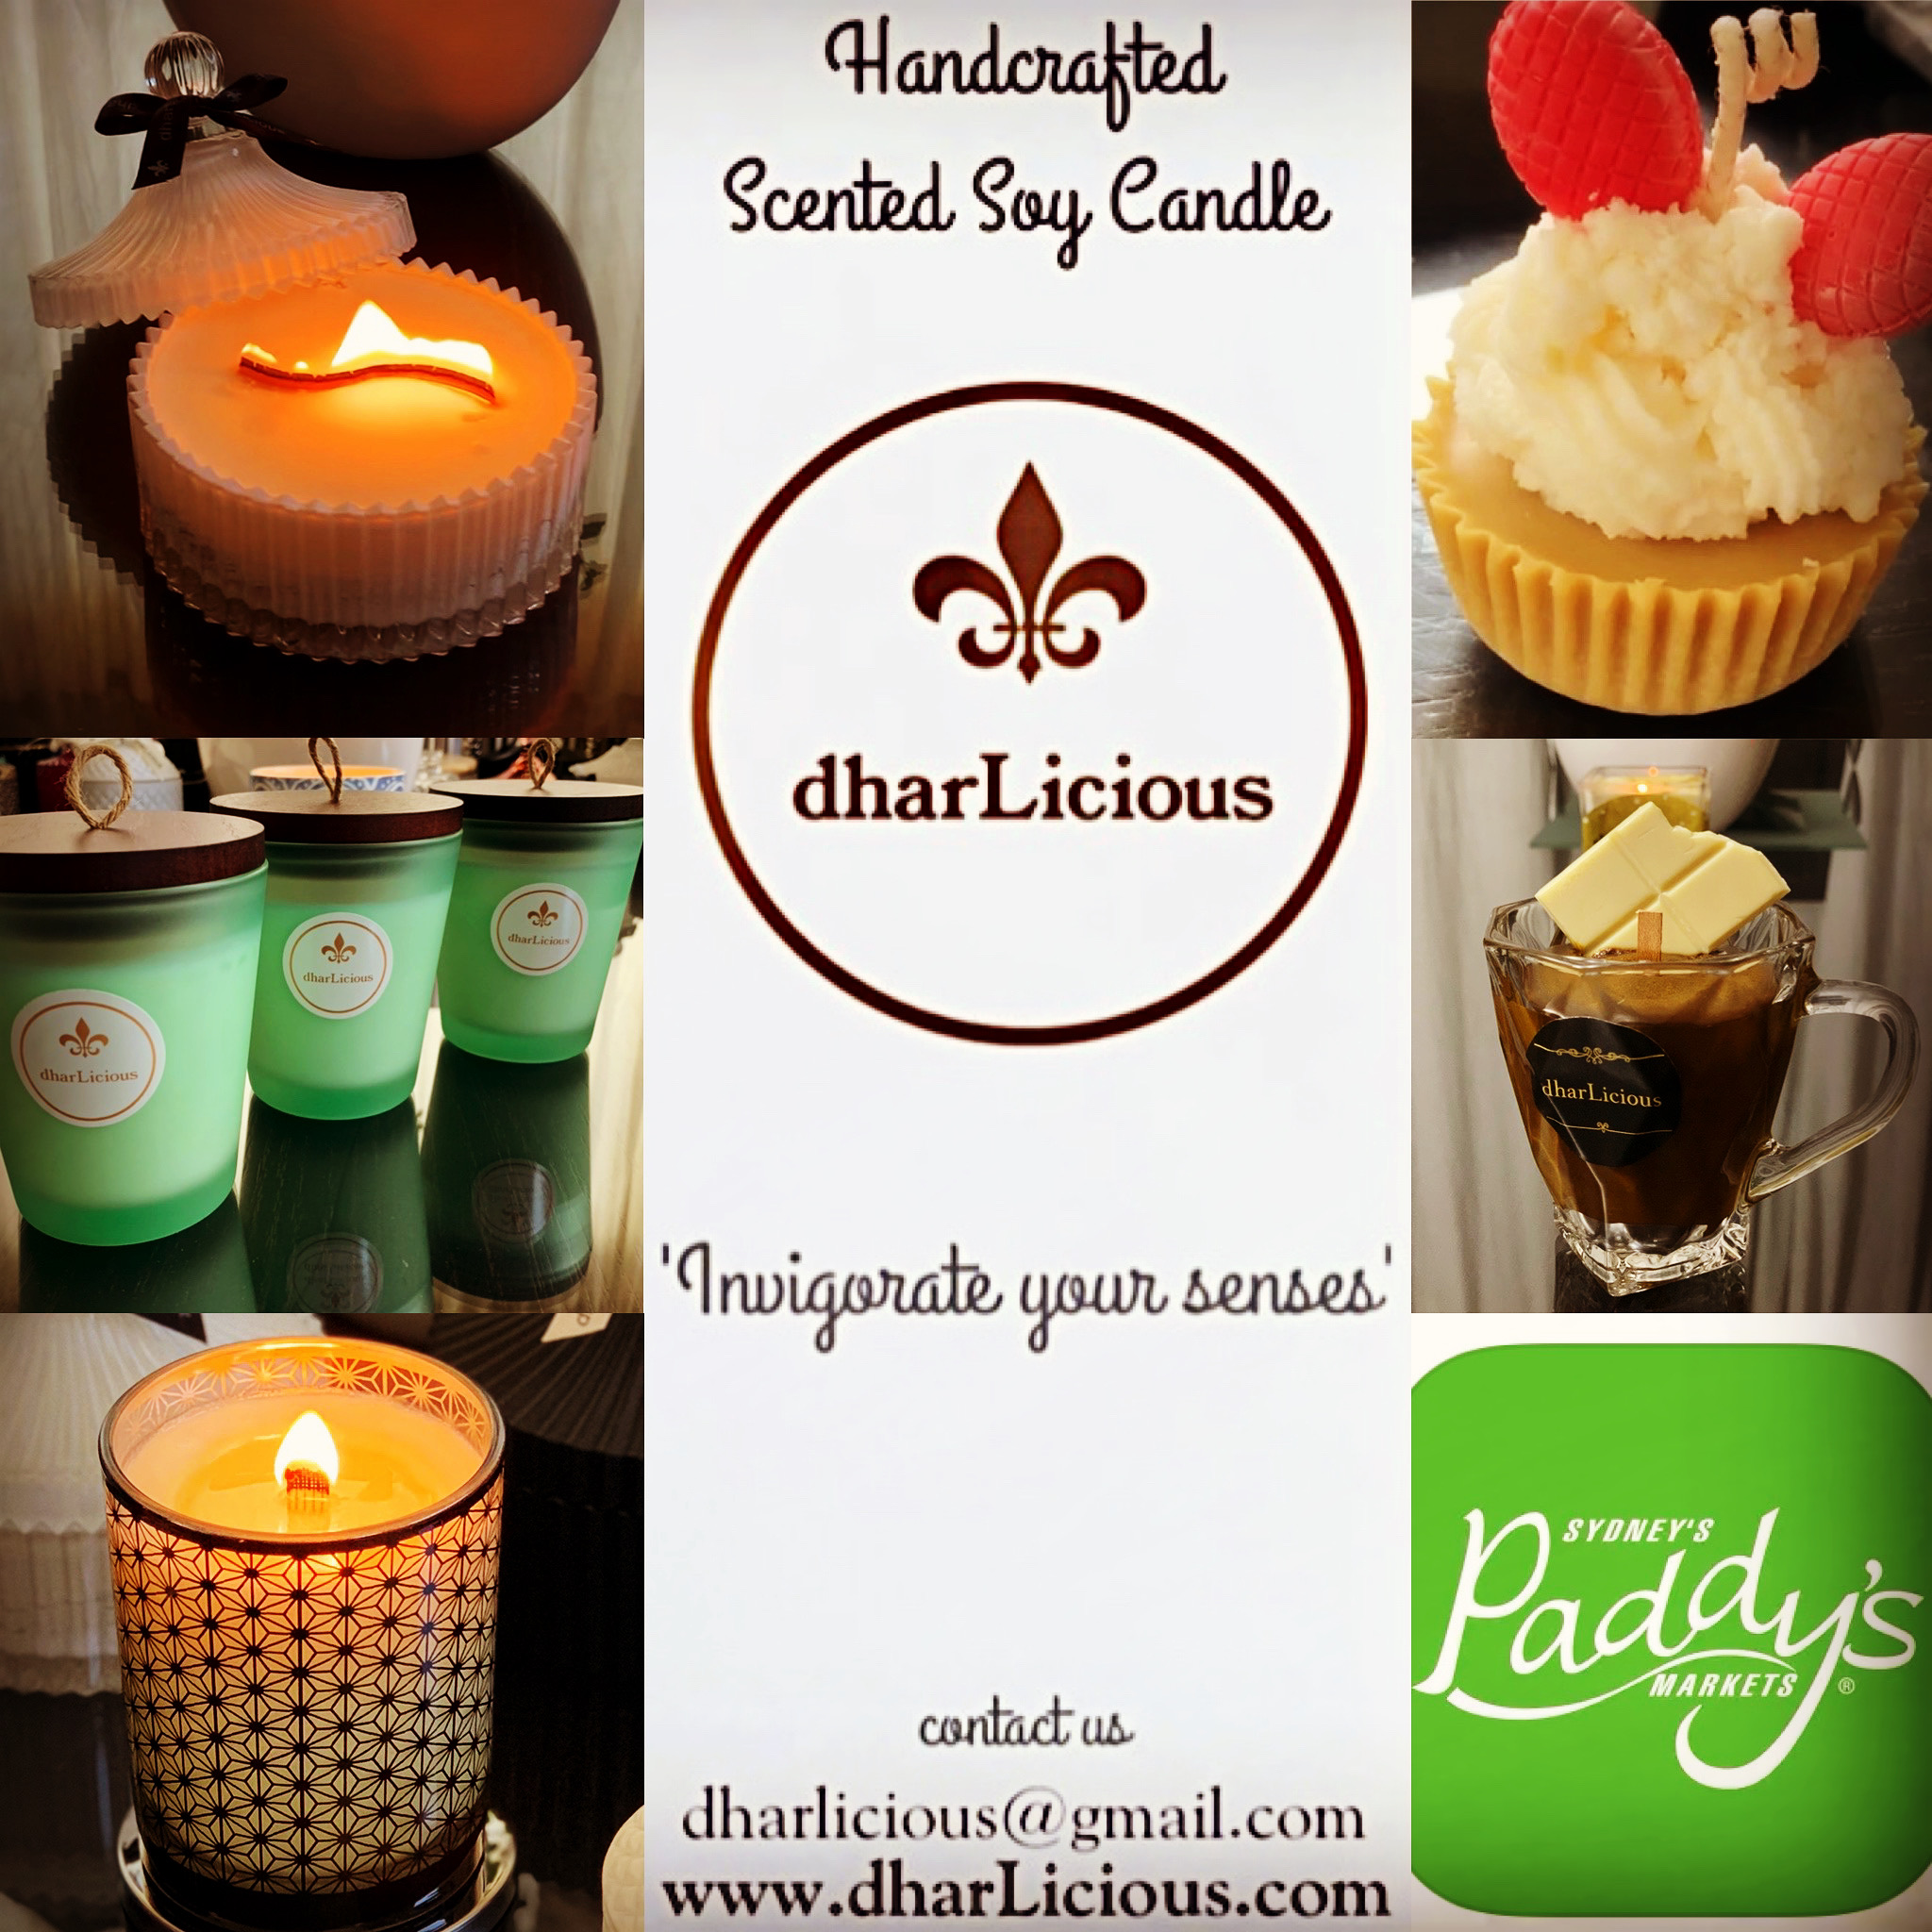 dharLicious – handcrafted scented soy candles